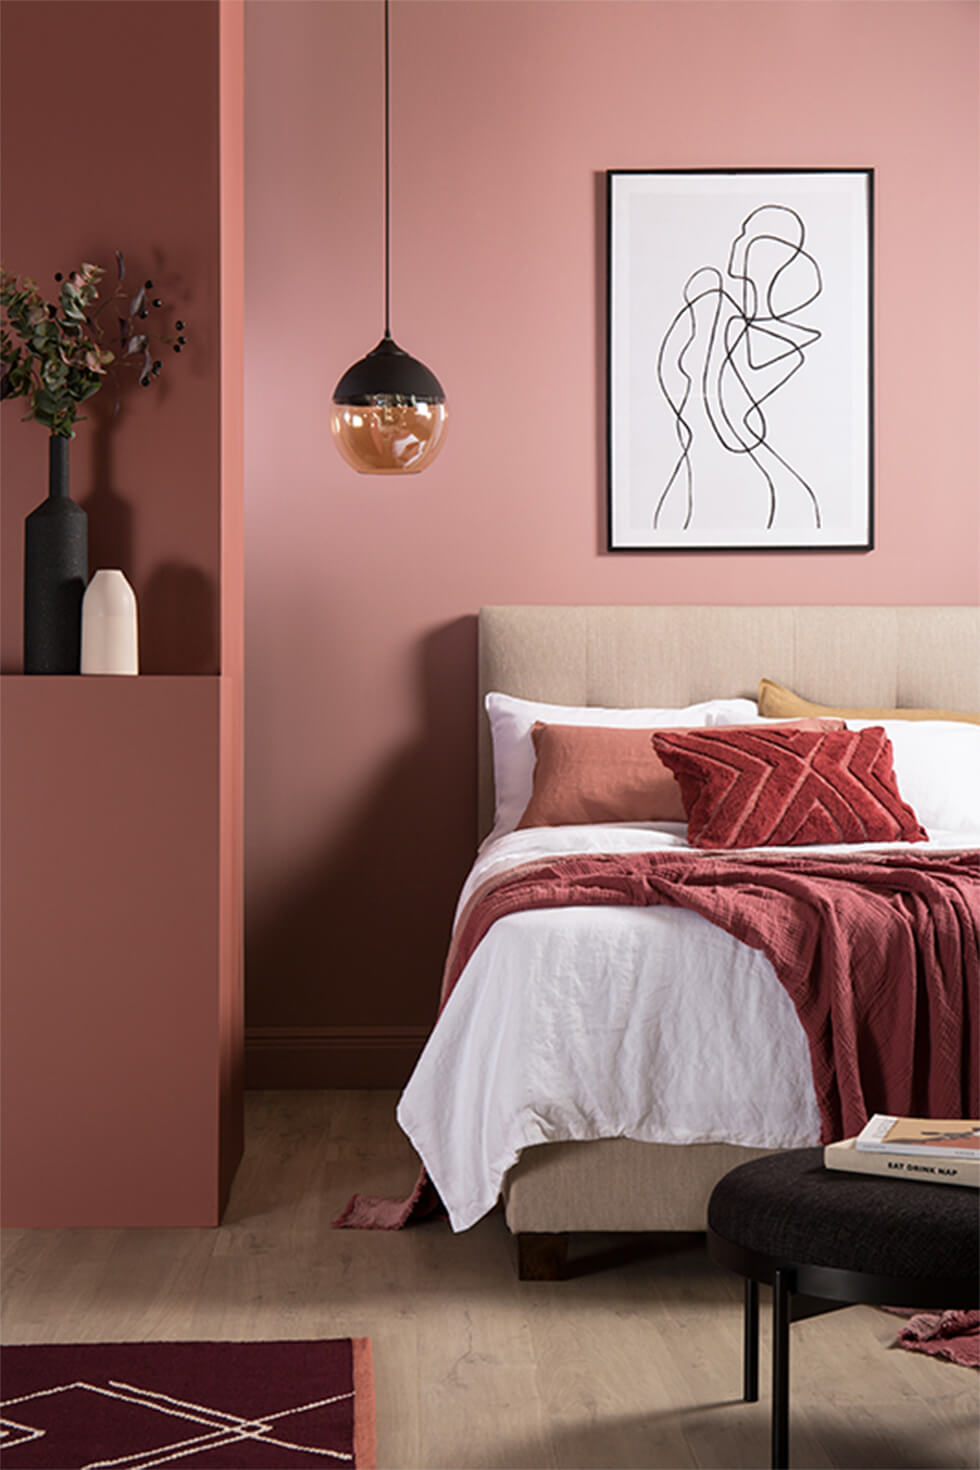 Pink bedroom with fabric bed, glass pendant lamp and terracotta accents